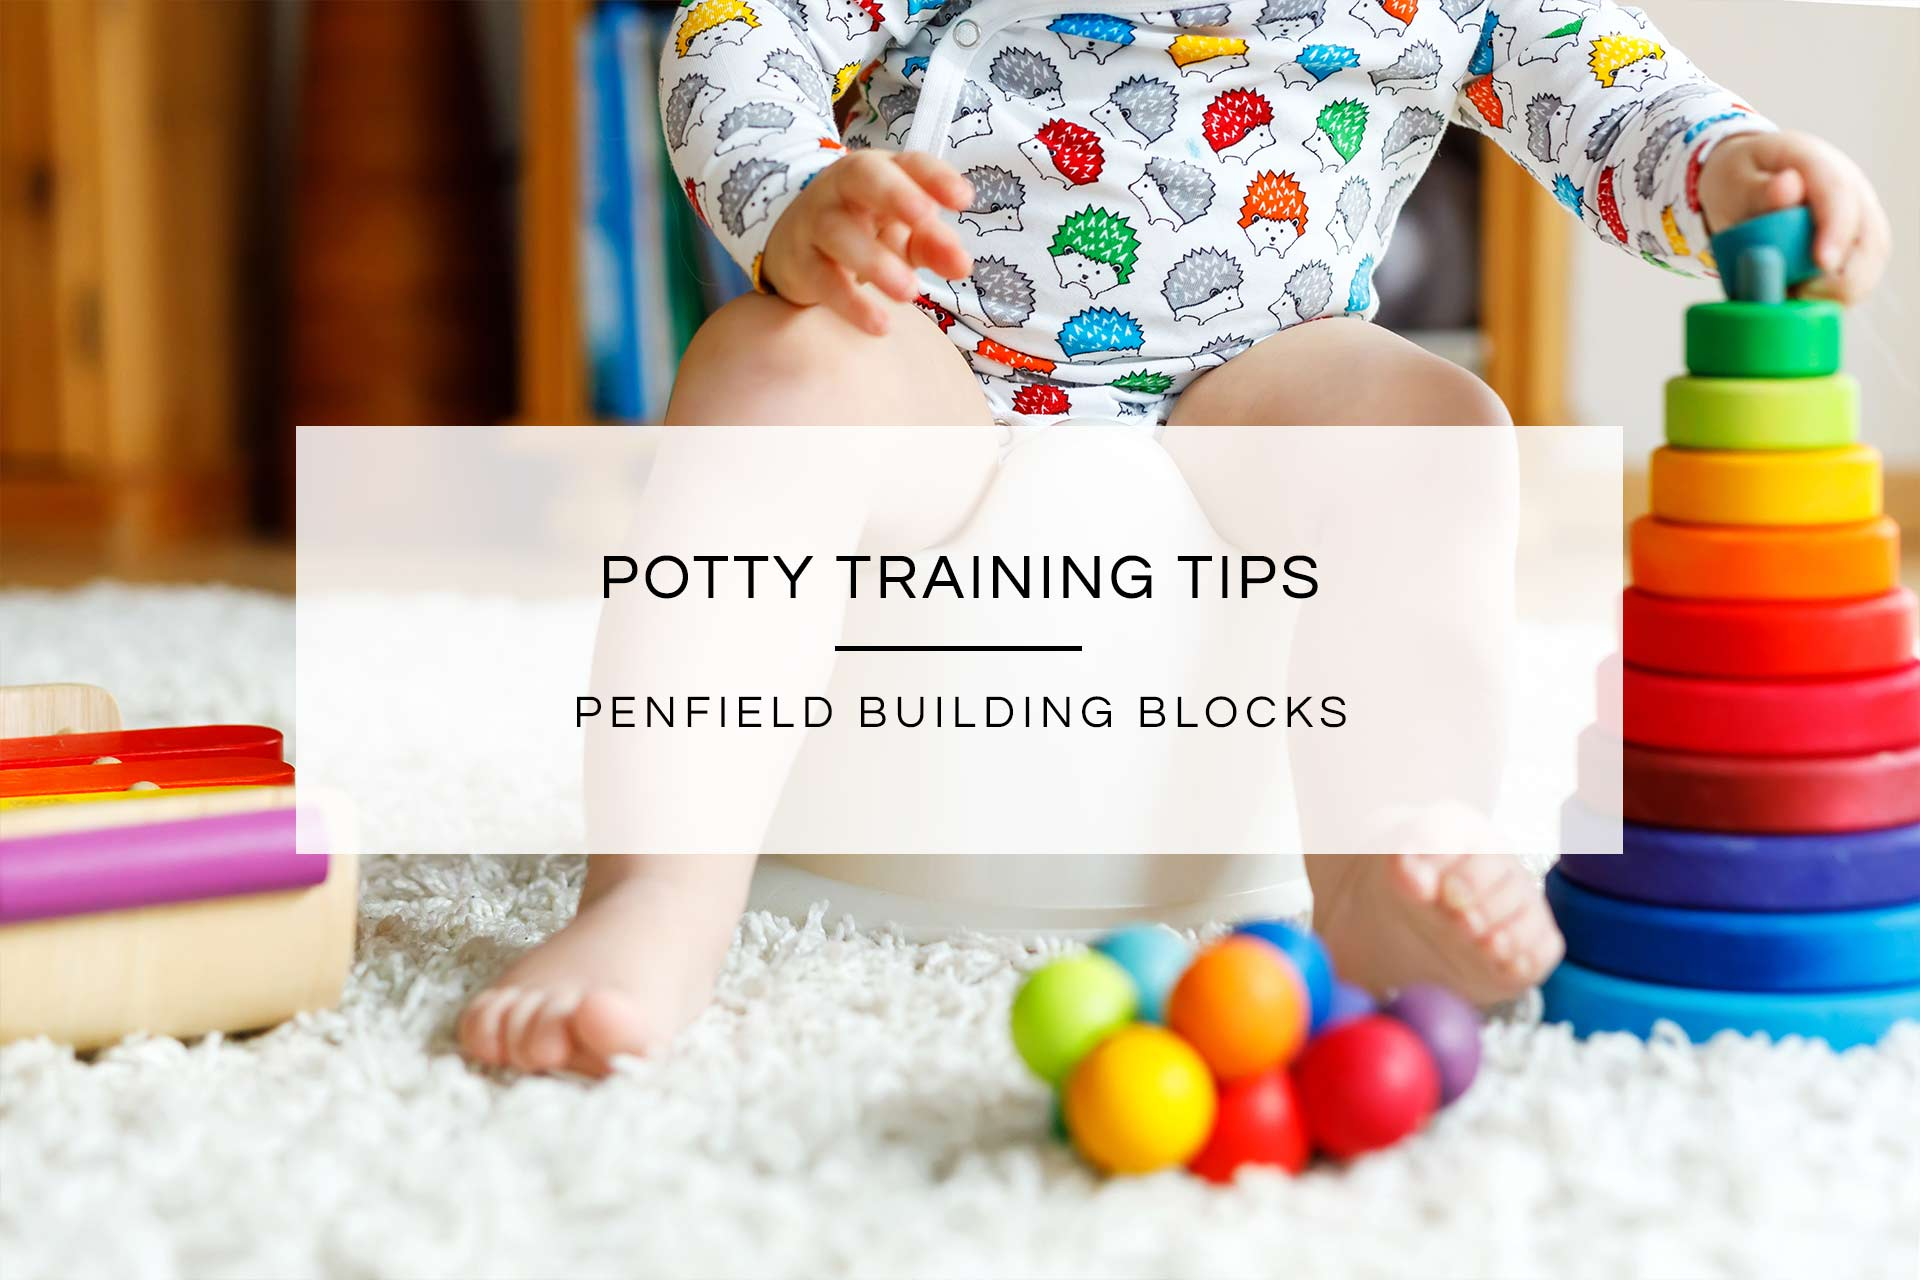 Potty Training Tips | Penfield Building Blocks